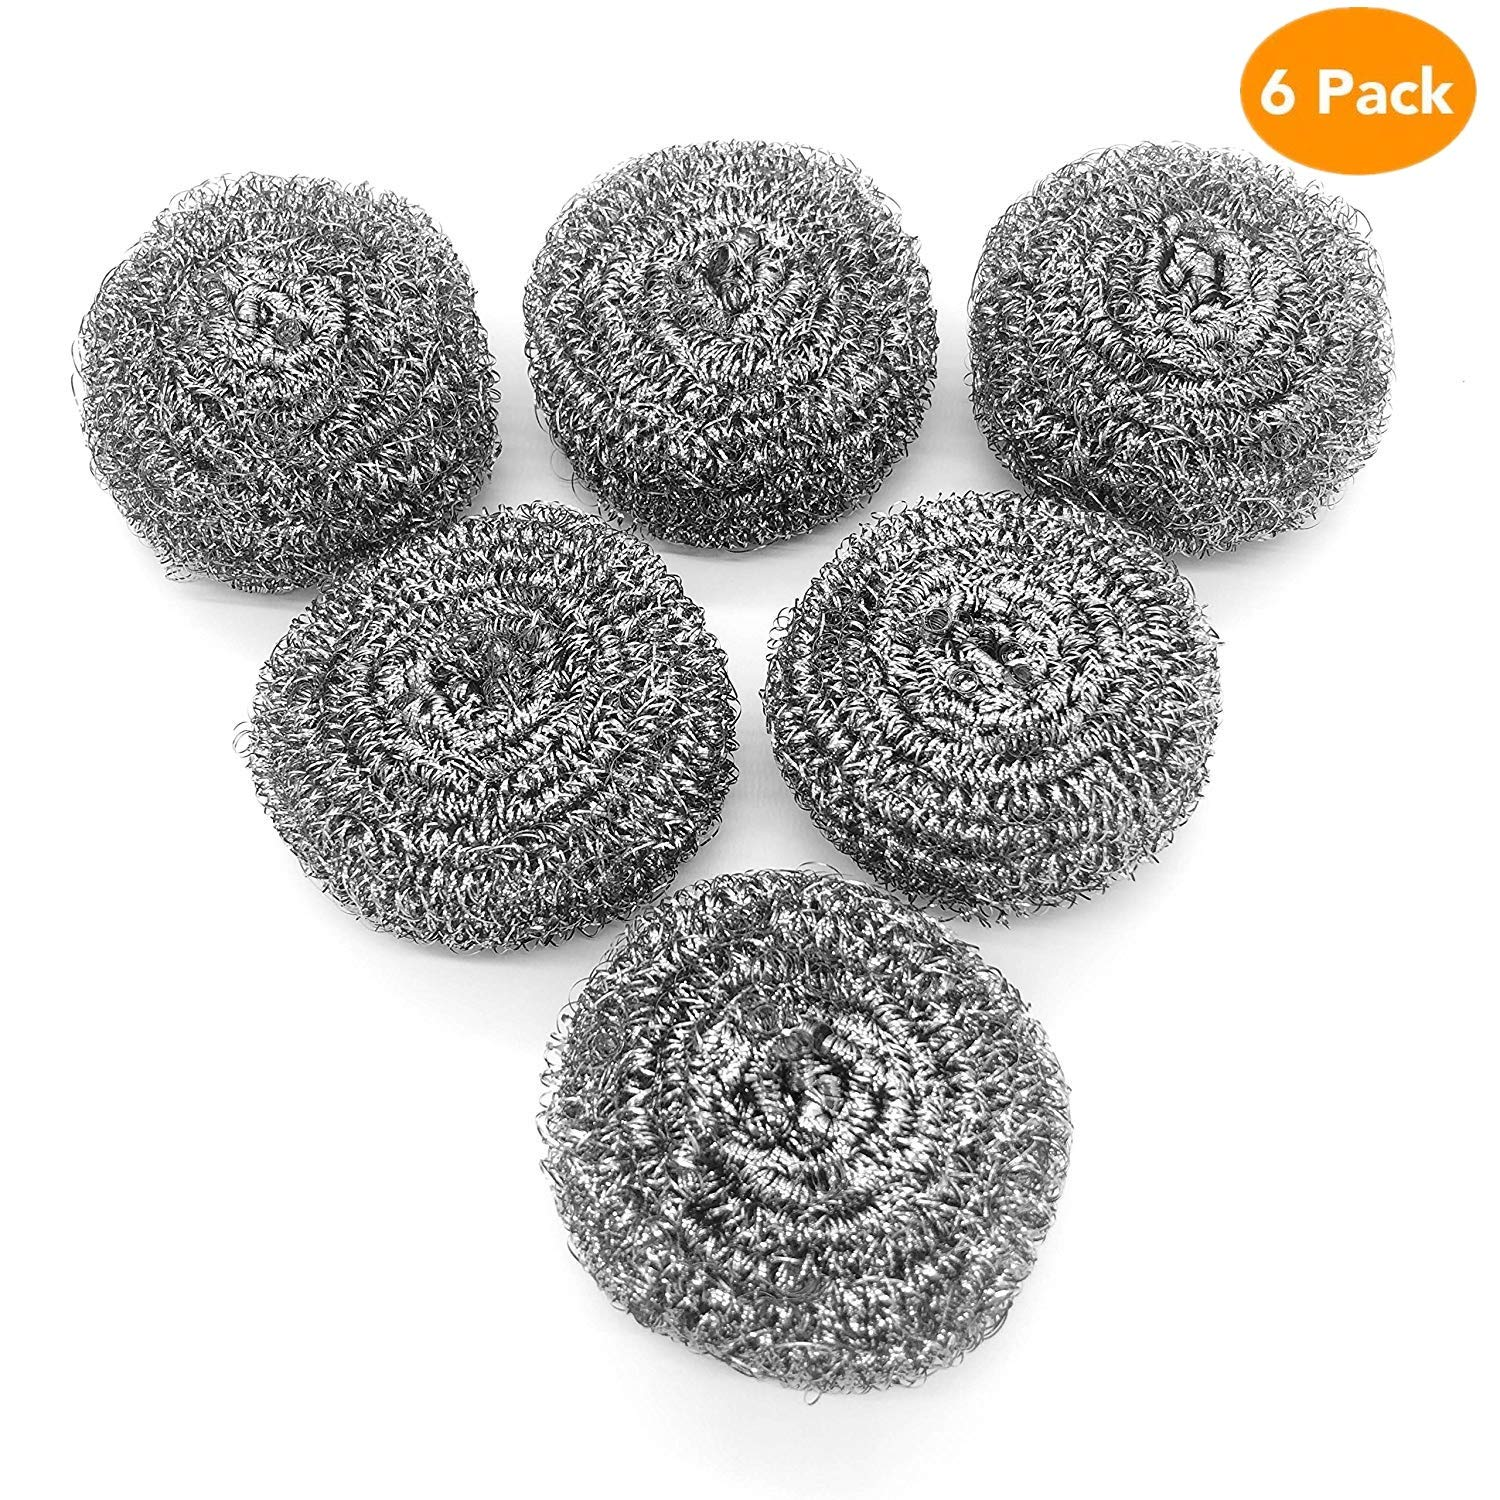 URSMART Stainless Steel Sponges,Stainless Steel Scrubber,Steel Wool Scrubber Pad for Tough Kitchen Cleaning - Metal Mesh Scourer for Dishes, Pots, Pans, Kitchen Cooking Utensil Cleaning Tools(6pcs)